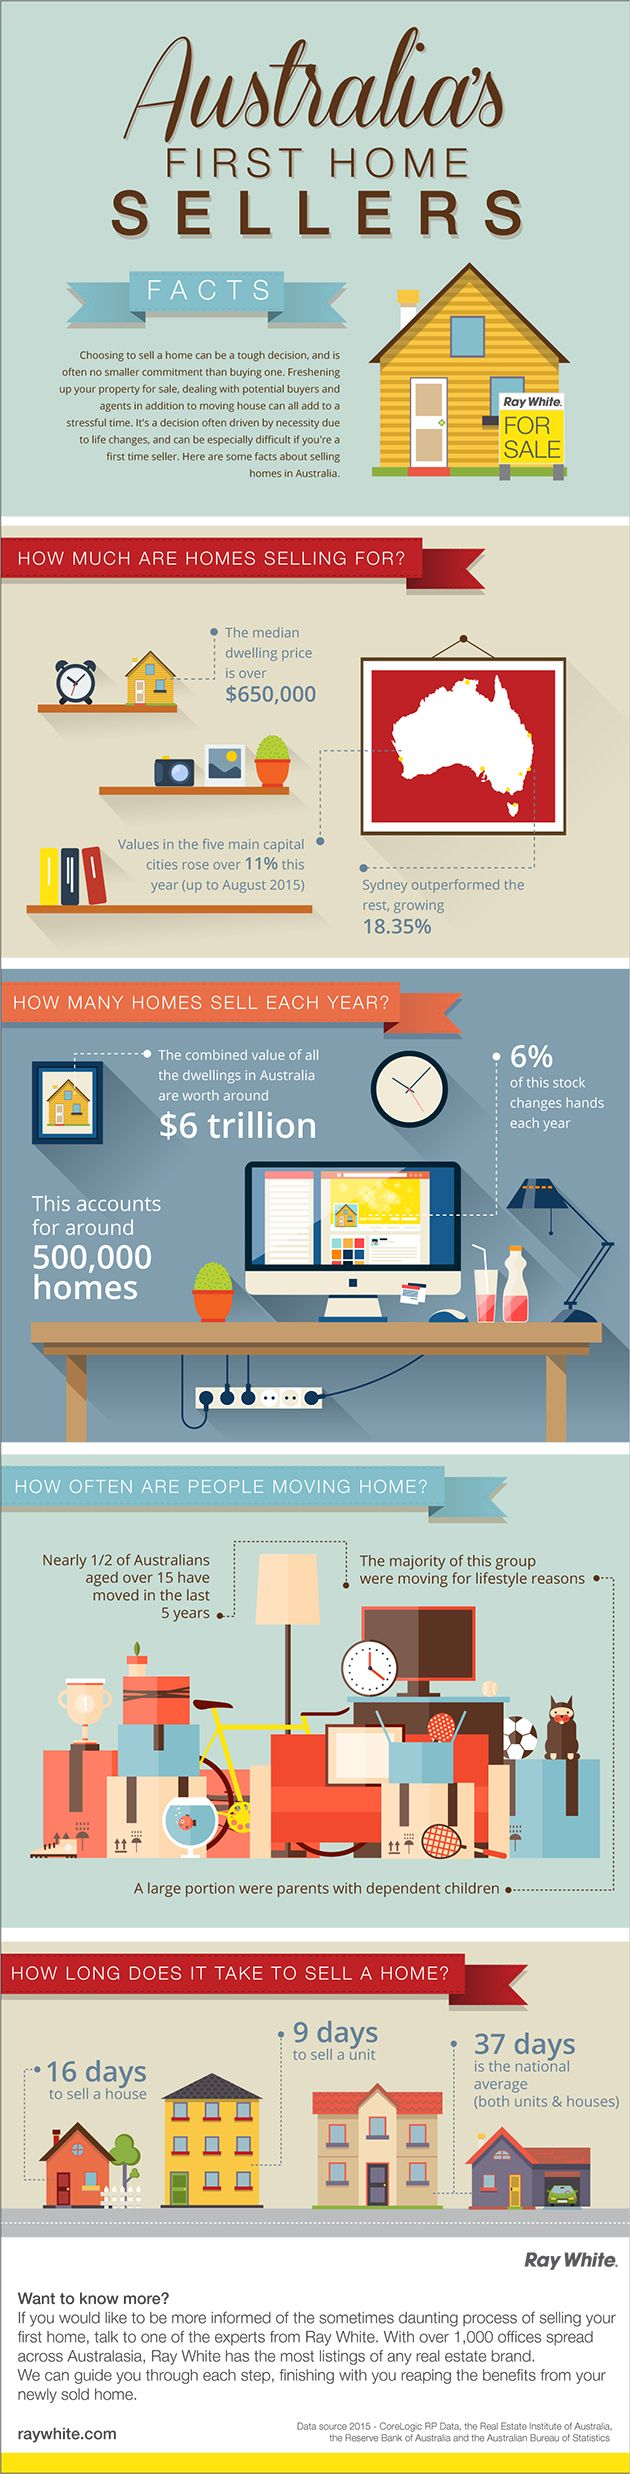 Australian First Home seller infographic real estate Ray White